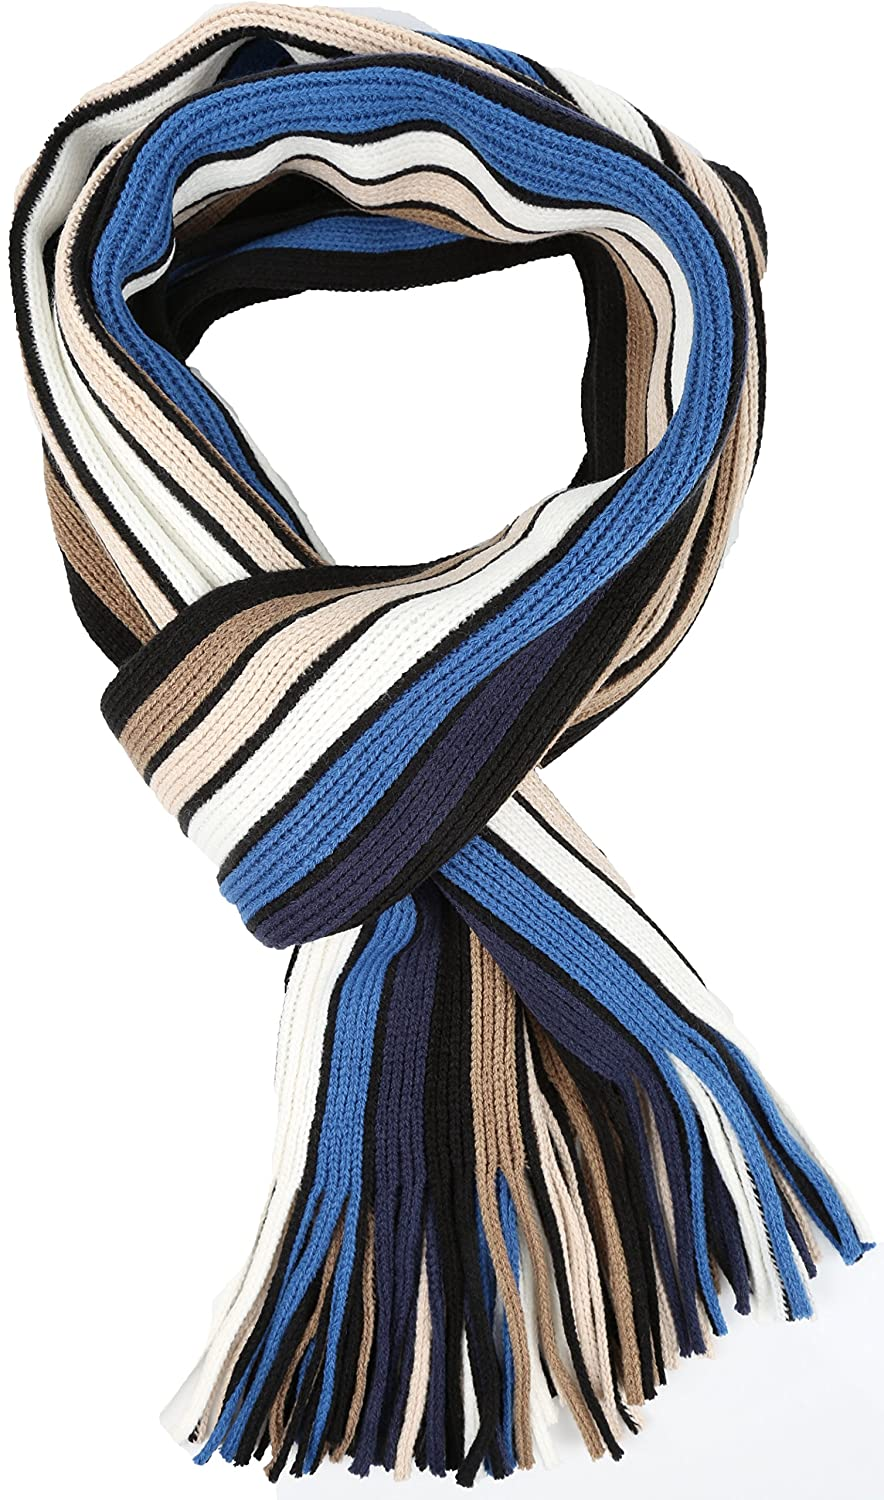 Sakkas Rhyland Striped Color Block Knitted Winter Scarf With Fringe 5055861857862